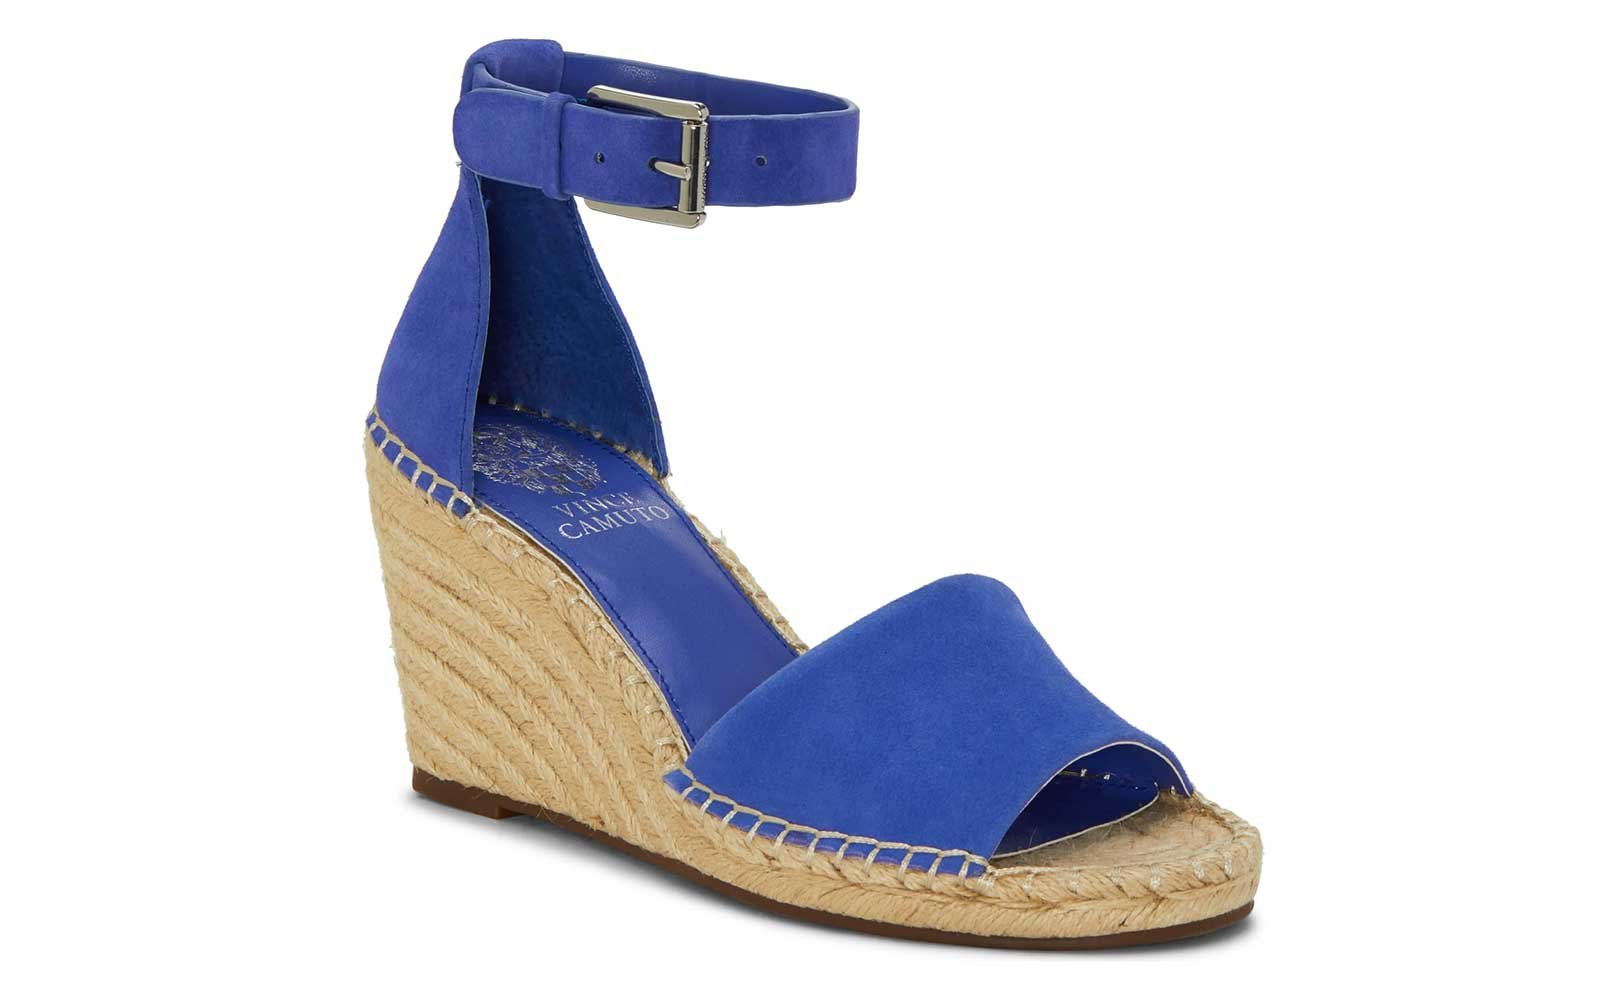 Blue Suede wedges by Vince Camuto